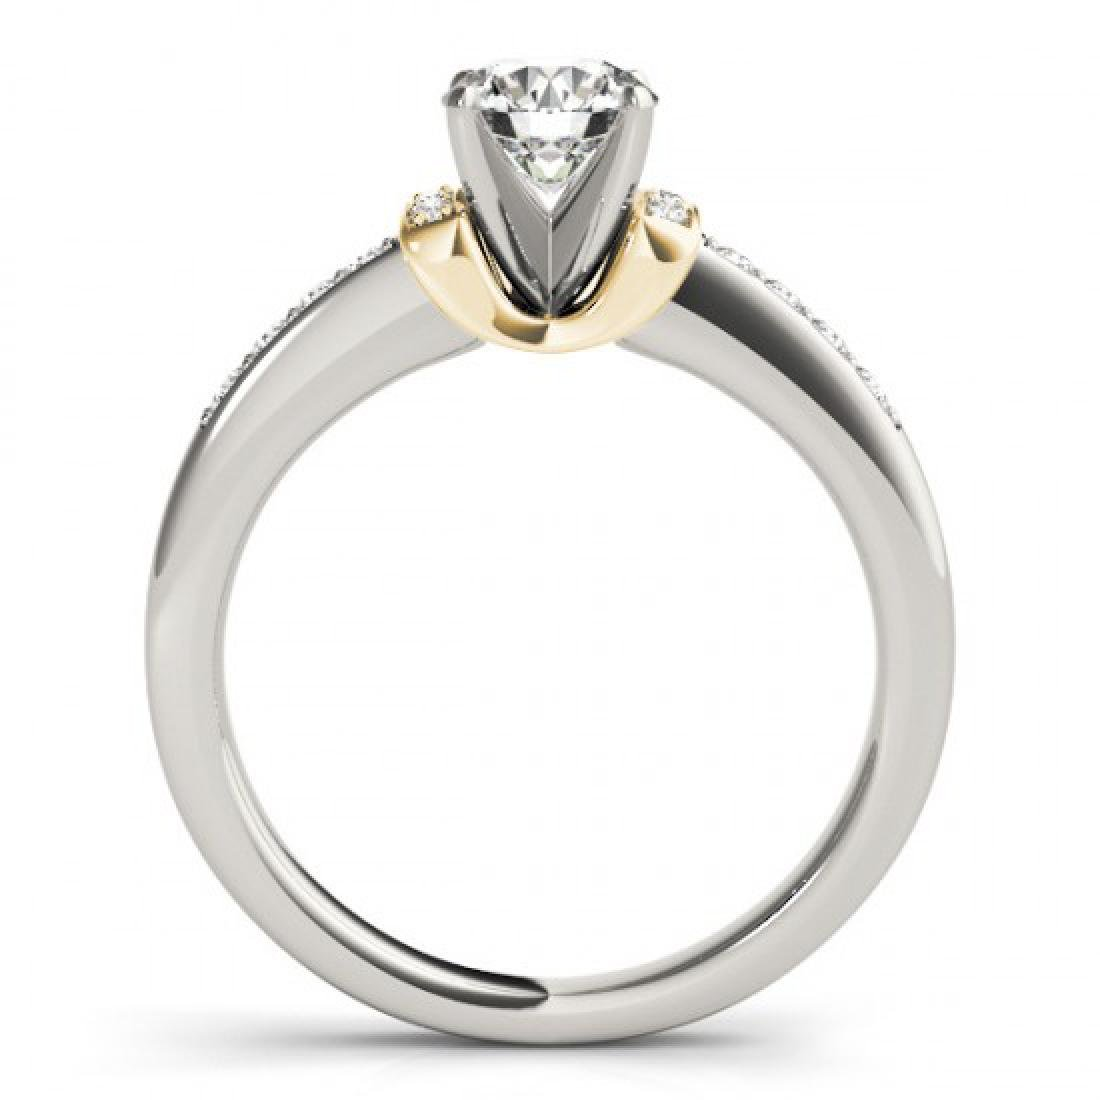 0.86 CTW Certified VS/SI Diamond Solitaire Ring 14K - 2